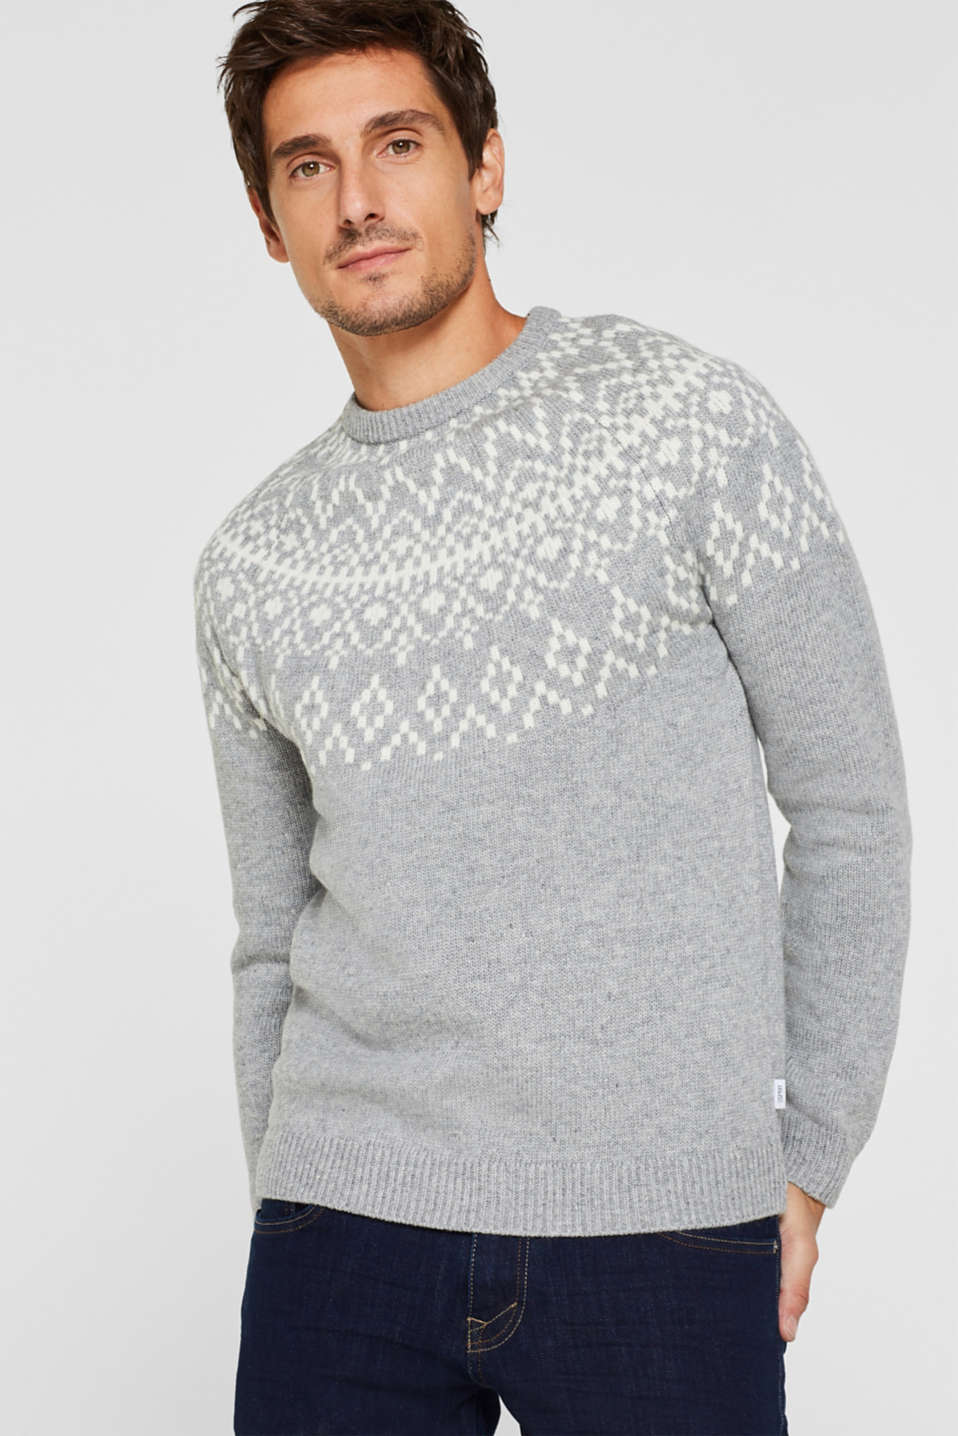 Esprit - With wool: Fair Isle knit jumper